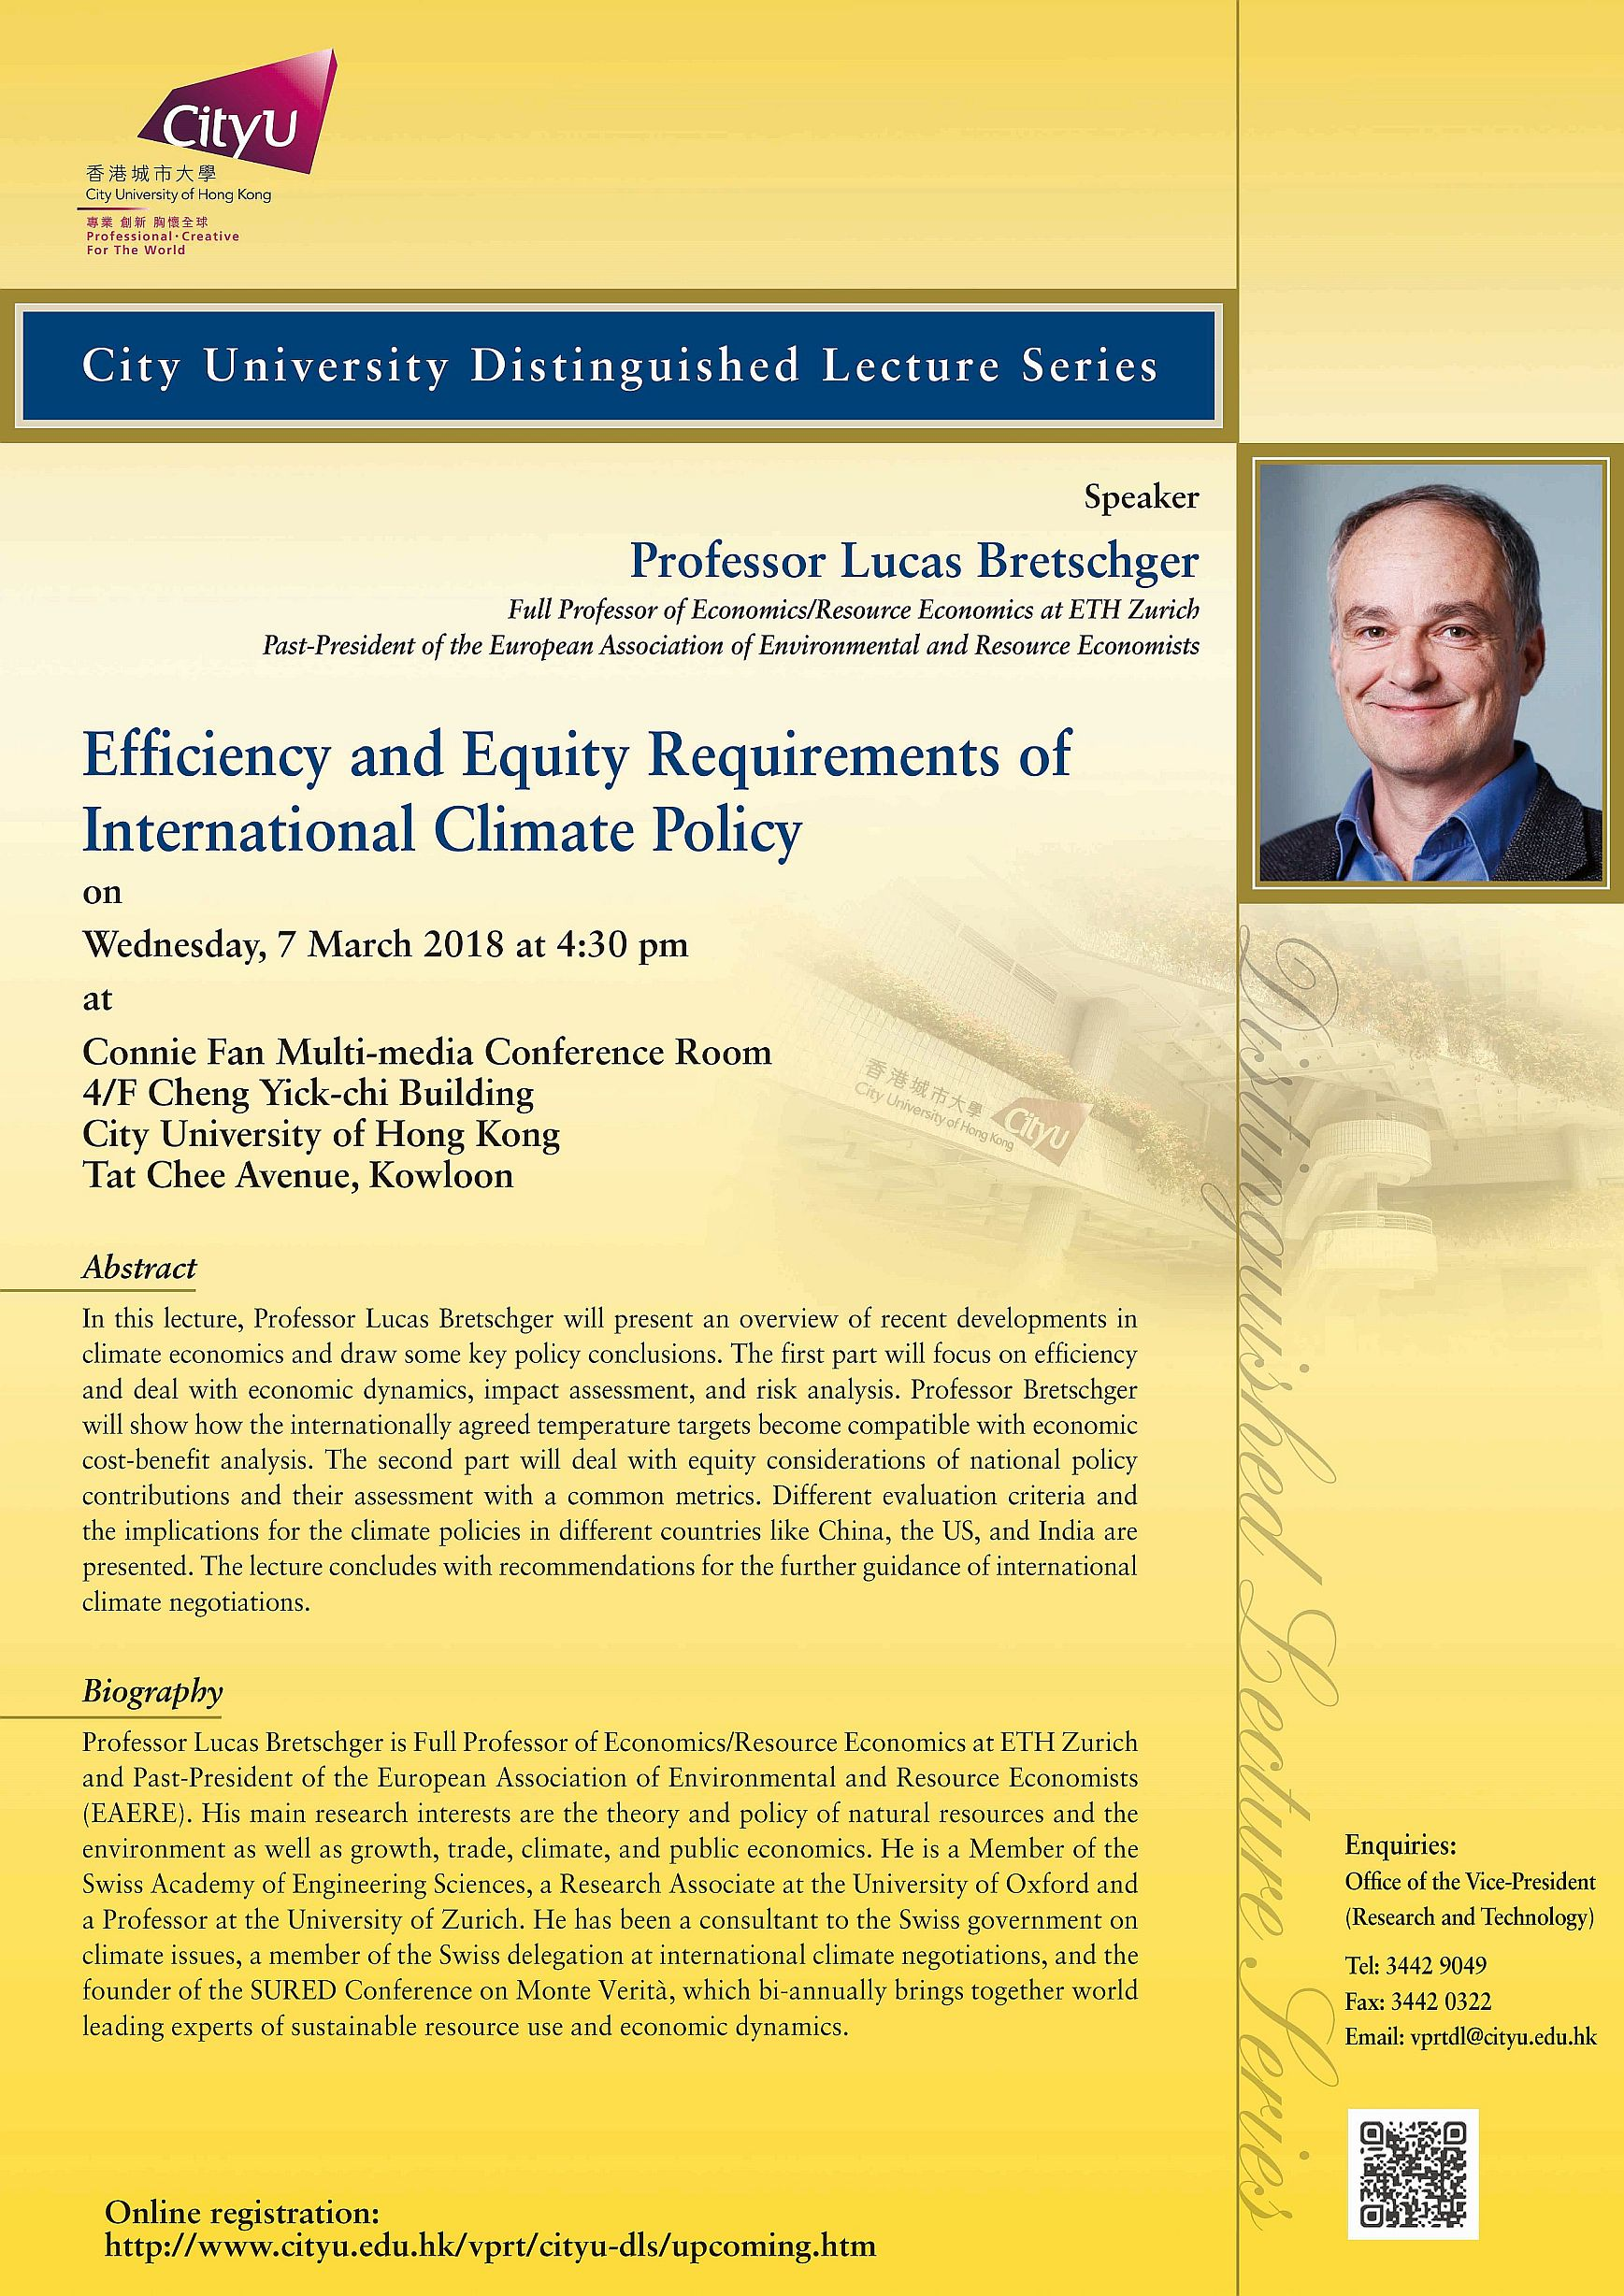 itle: Efficiency and Equity Requirements of International Climate Policy Speaker: Professor Lucas Bretschger Full Professor of Economics/Reseource Economics at ETH Zurich Past-President of the European Association of Environmental and Resource Economists Date: 7 March 2018 (Wednesday) Time: 4:15 – 4:30 pm (Tea reception) 4:30 – 6:00 pm (Lecture) Venue: Connie Fan Multi-media Conferecne Room 4/F Cheng Yick-chi Building City University of Hong Kong Tat Chee Avenue, Kowloon